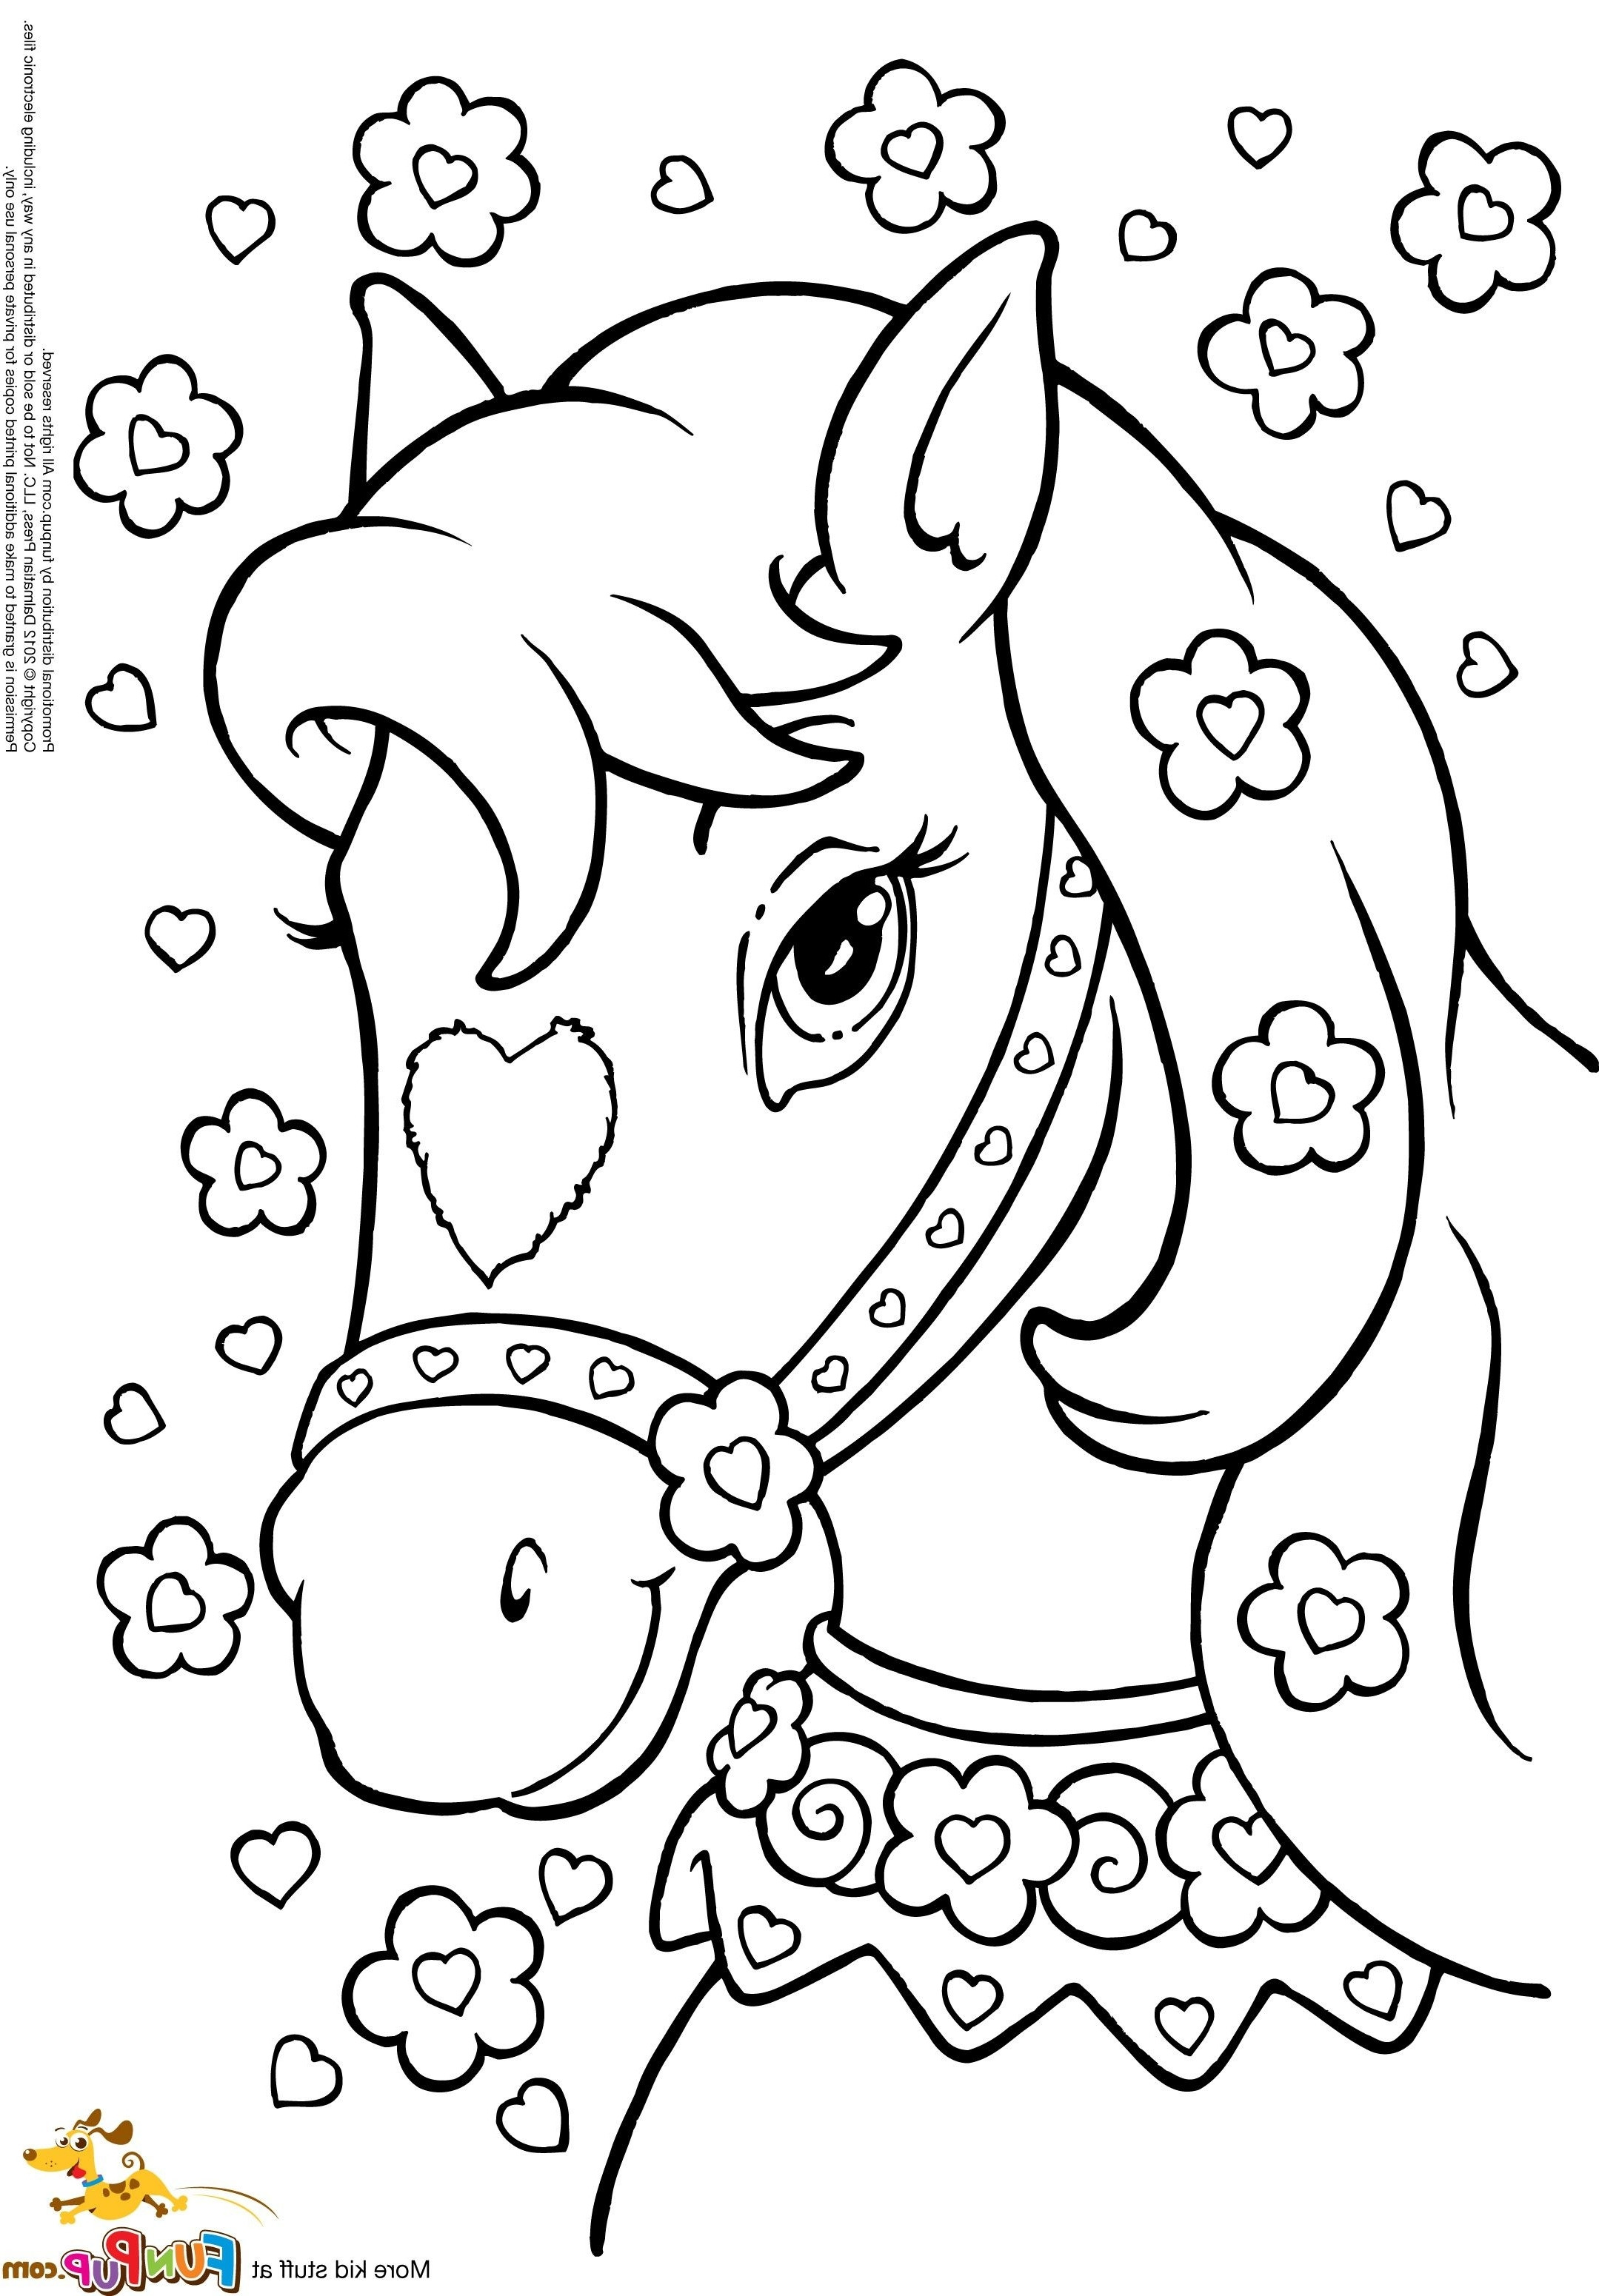 Printable Coloring Books For Toddlers  Coloring Pages For Kids HK42 Printable Princess Coloring